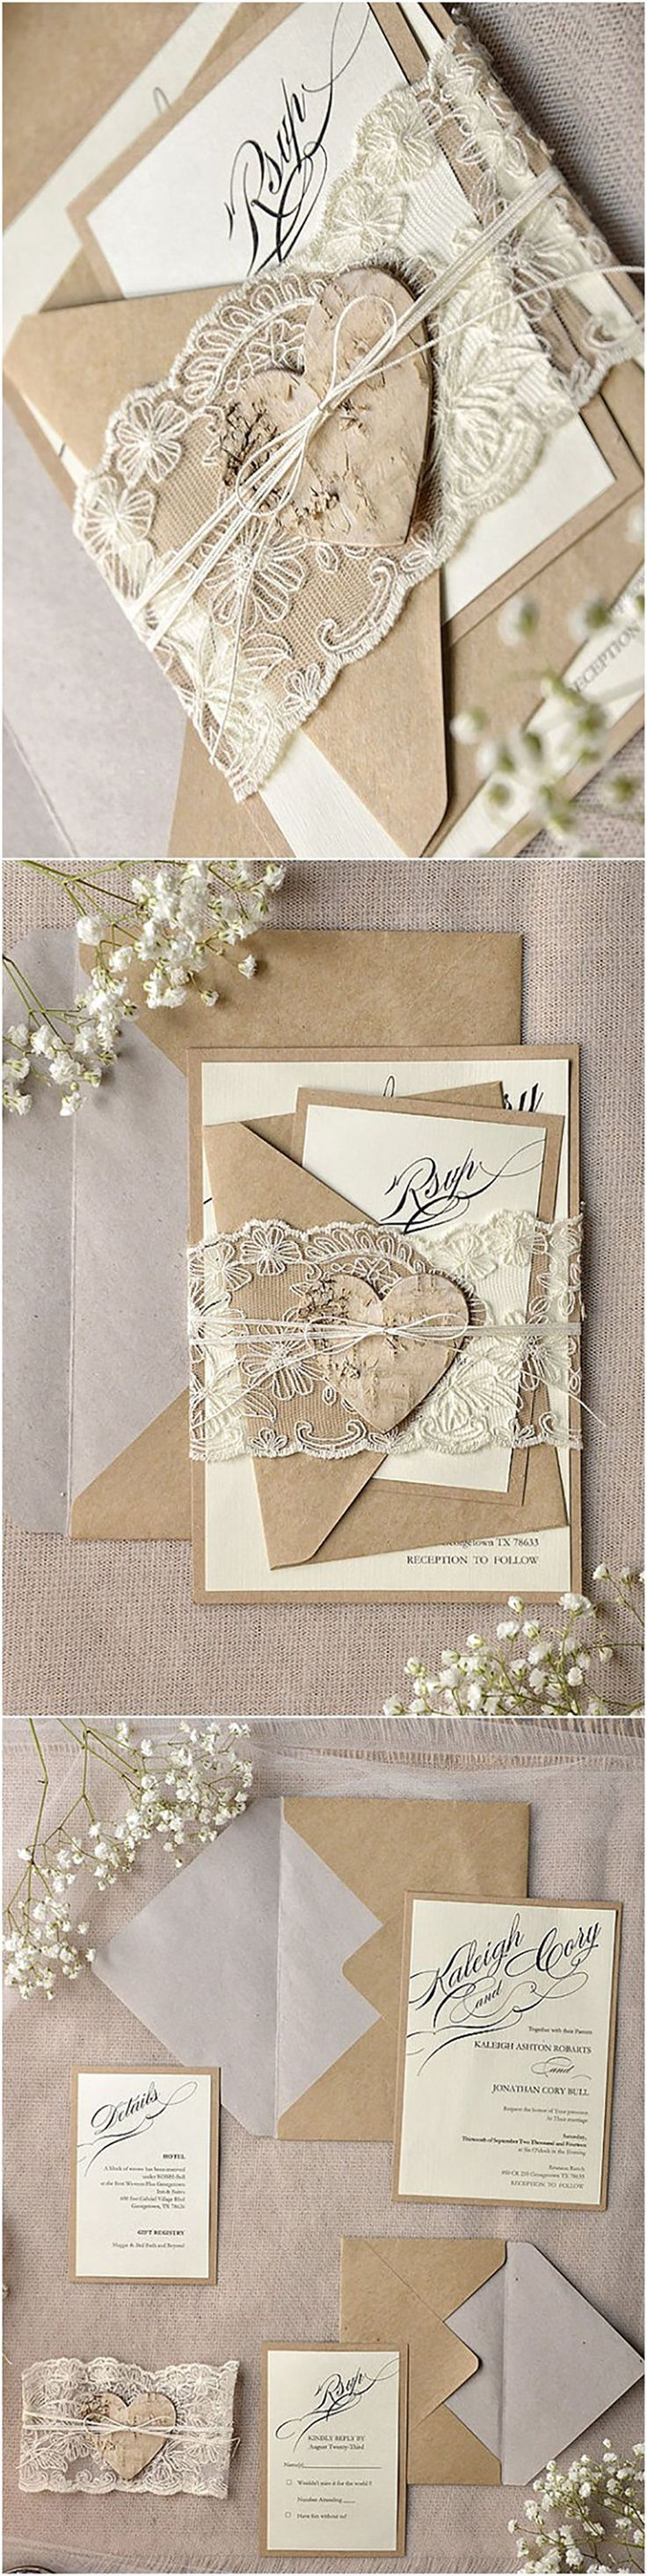 best Wedding Invitations images on Pinterest